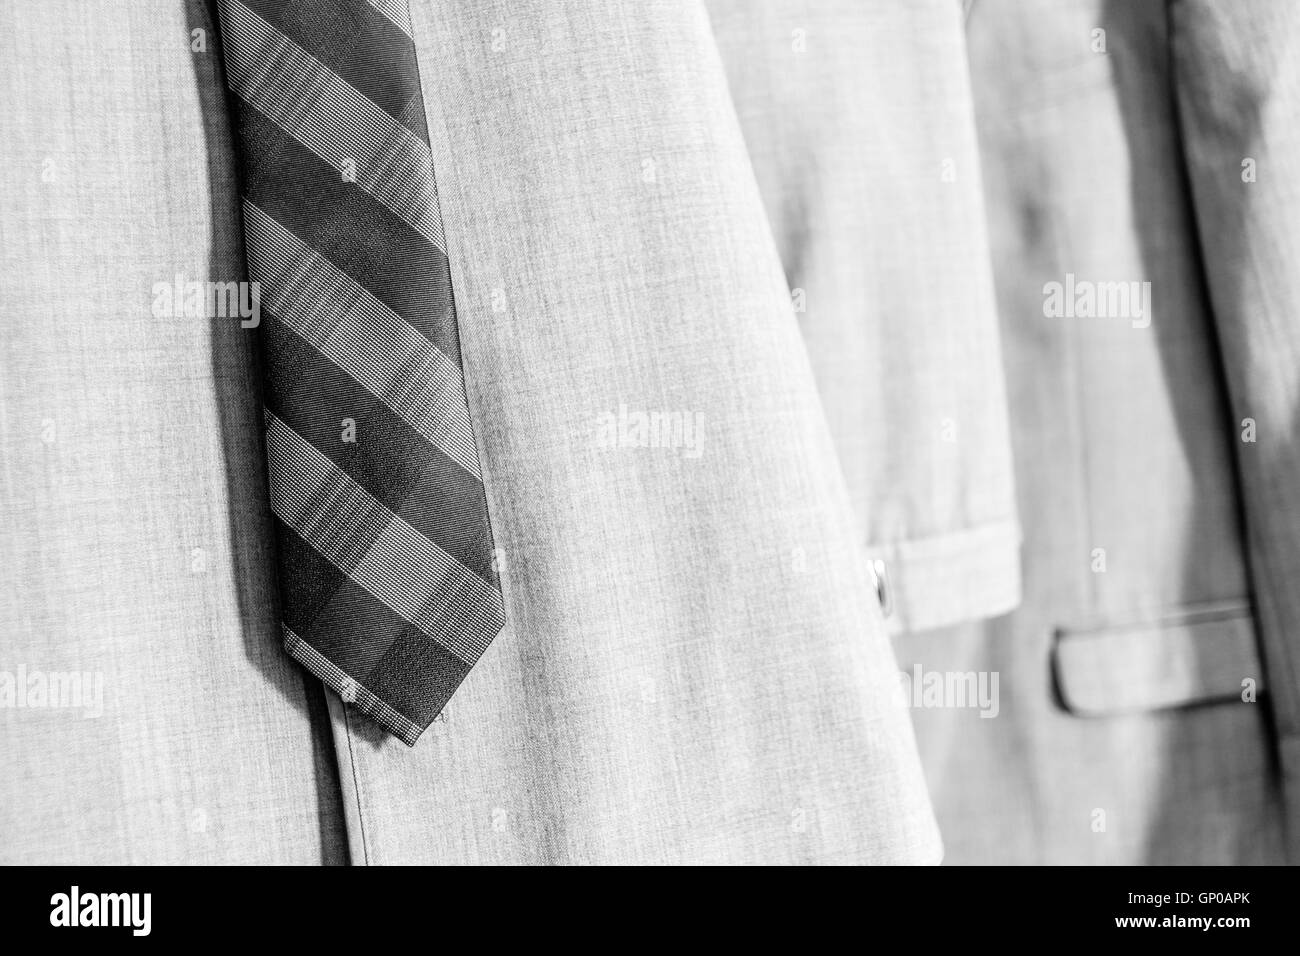 Men's clothing hanging in the closet. Tie, vest, jacket, trousers. Black and White. - Stock Image